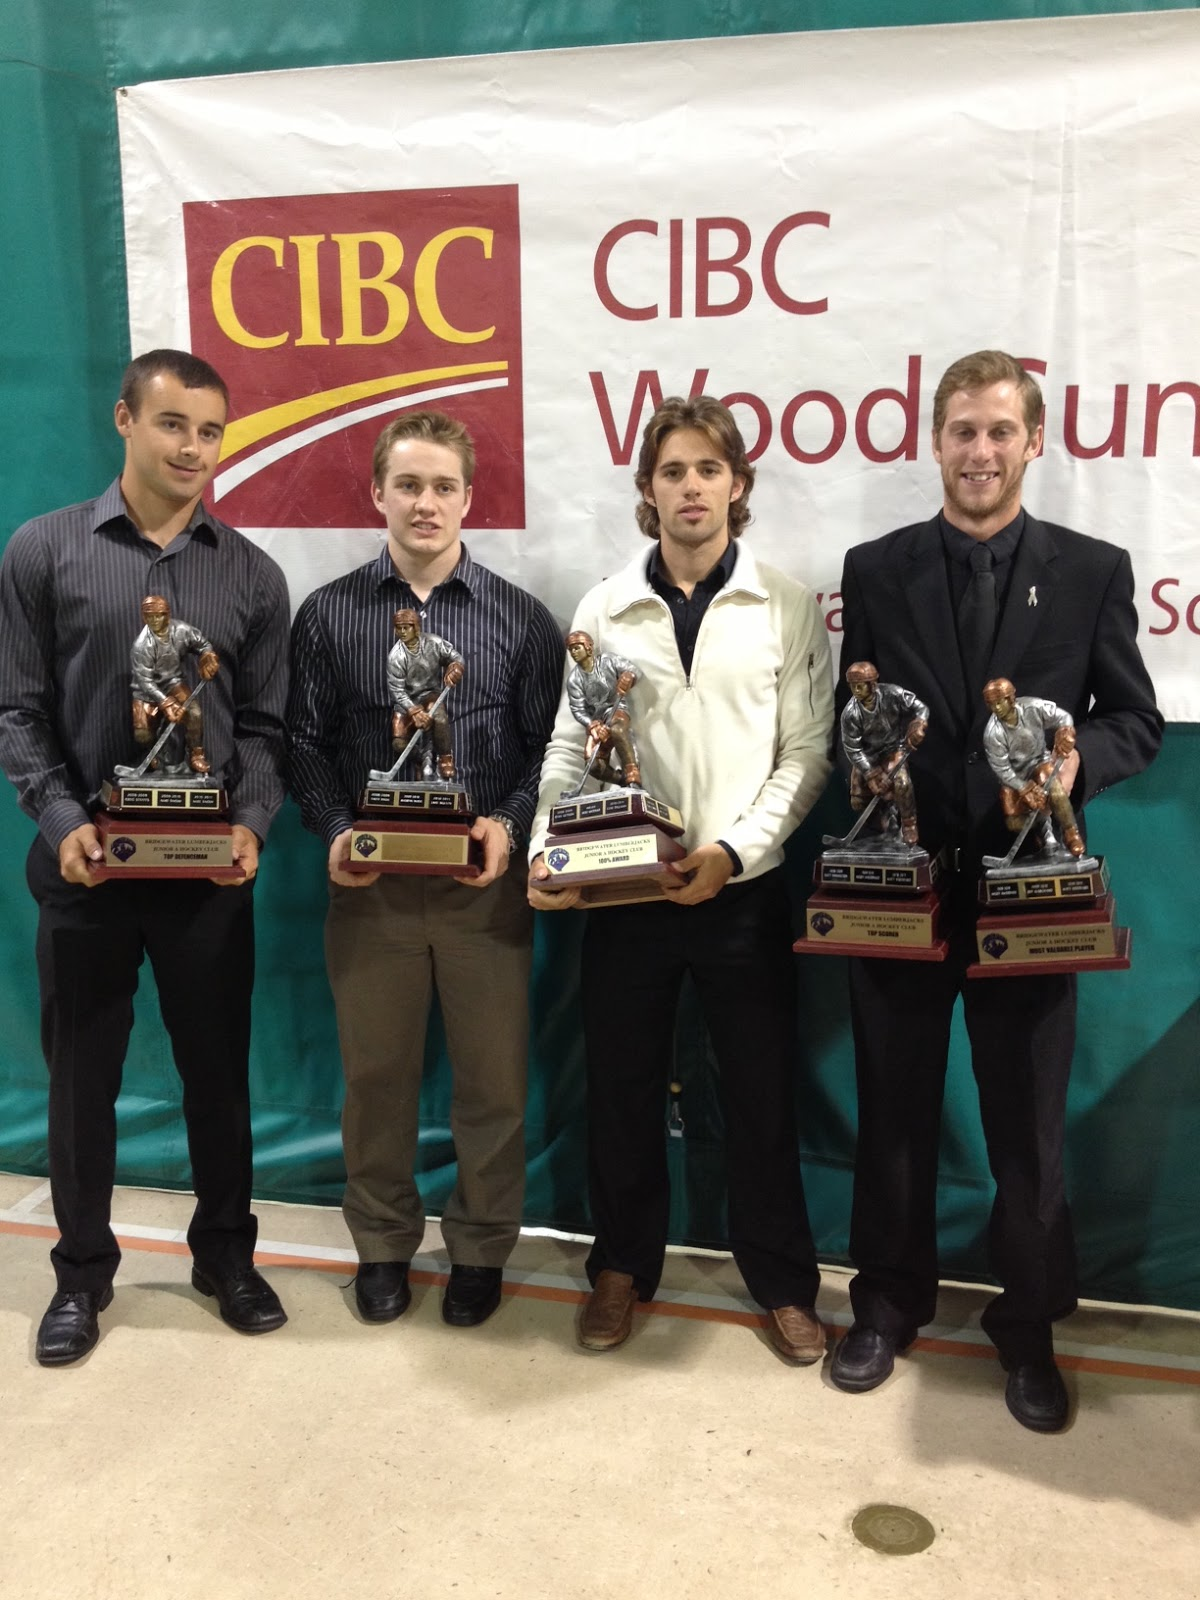 Crawley Named Lumberjacks Top Scorer And MVP | CKBW